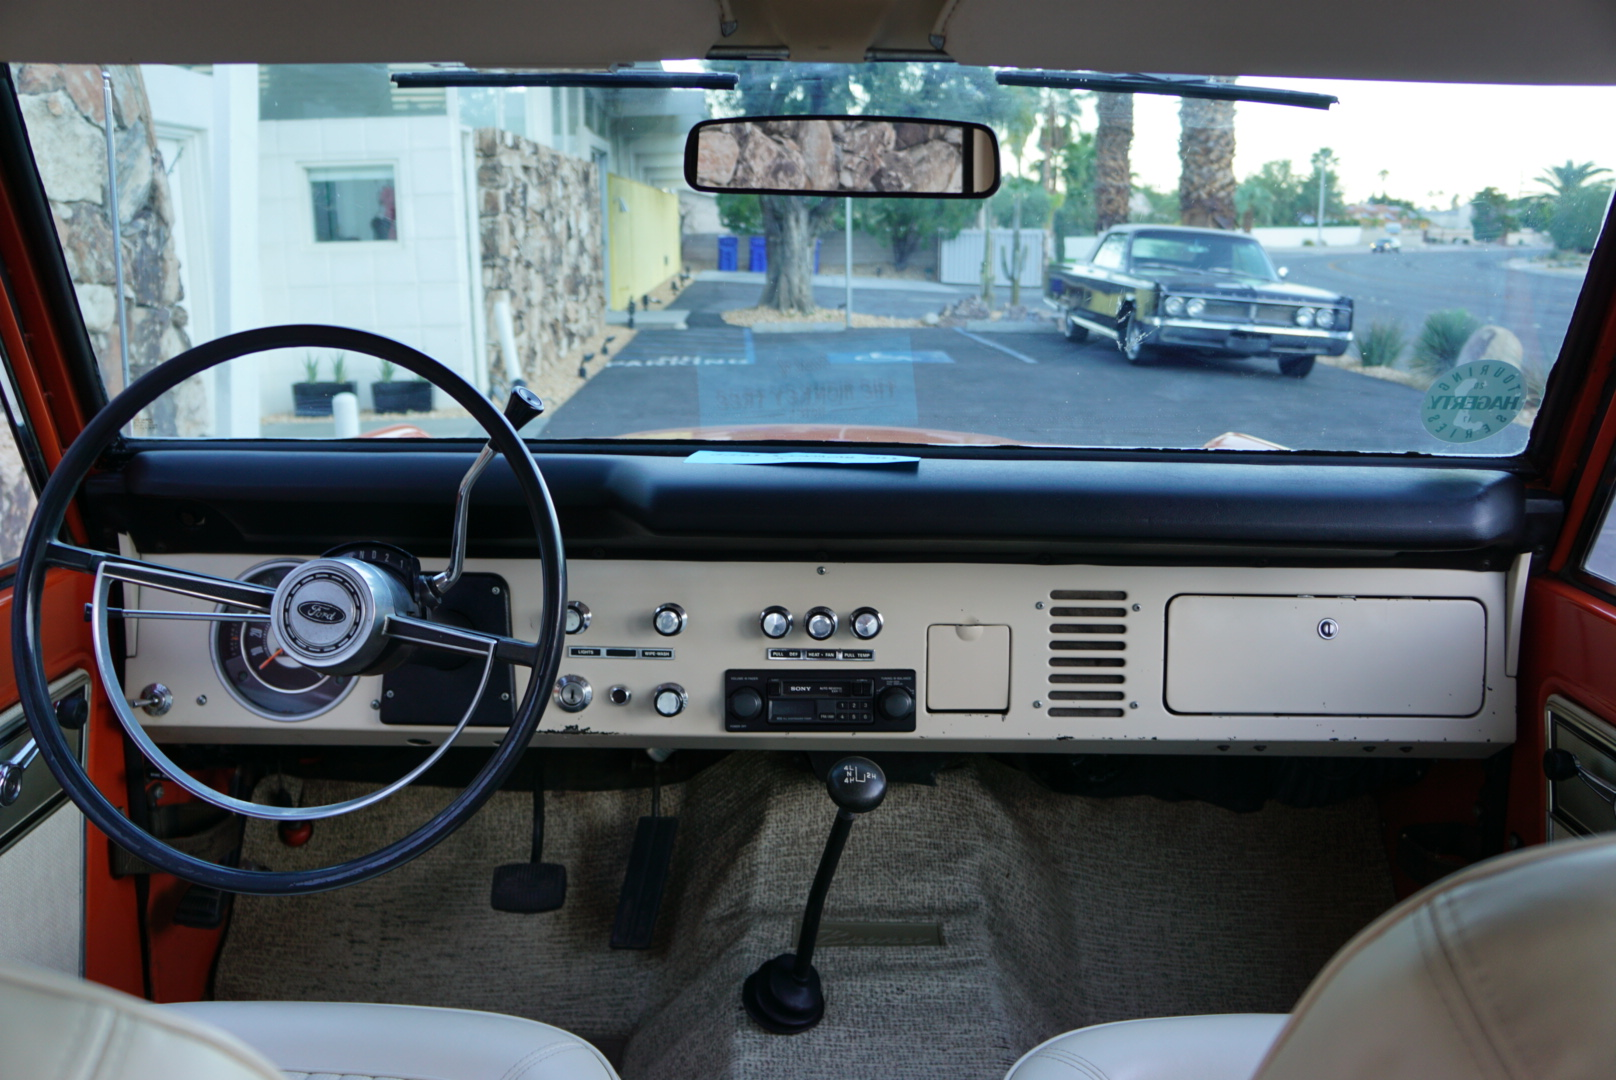 1974 Ford Bronco interior dash